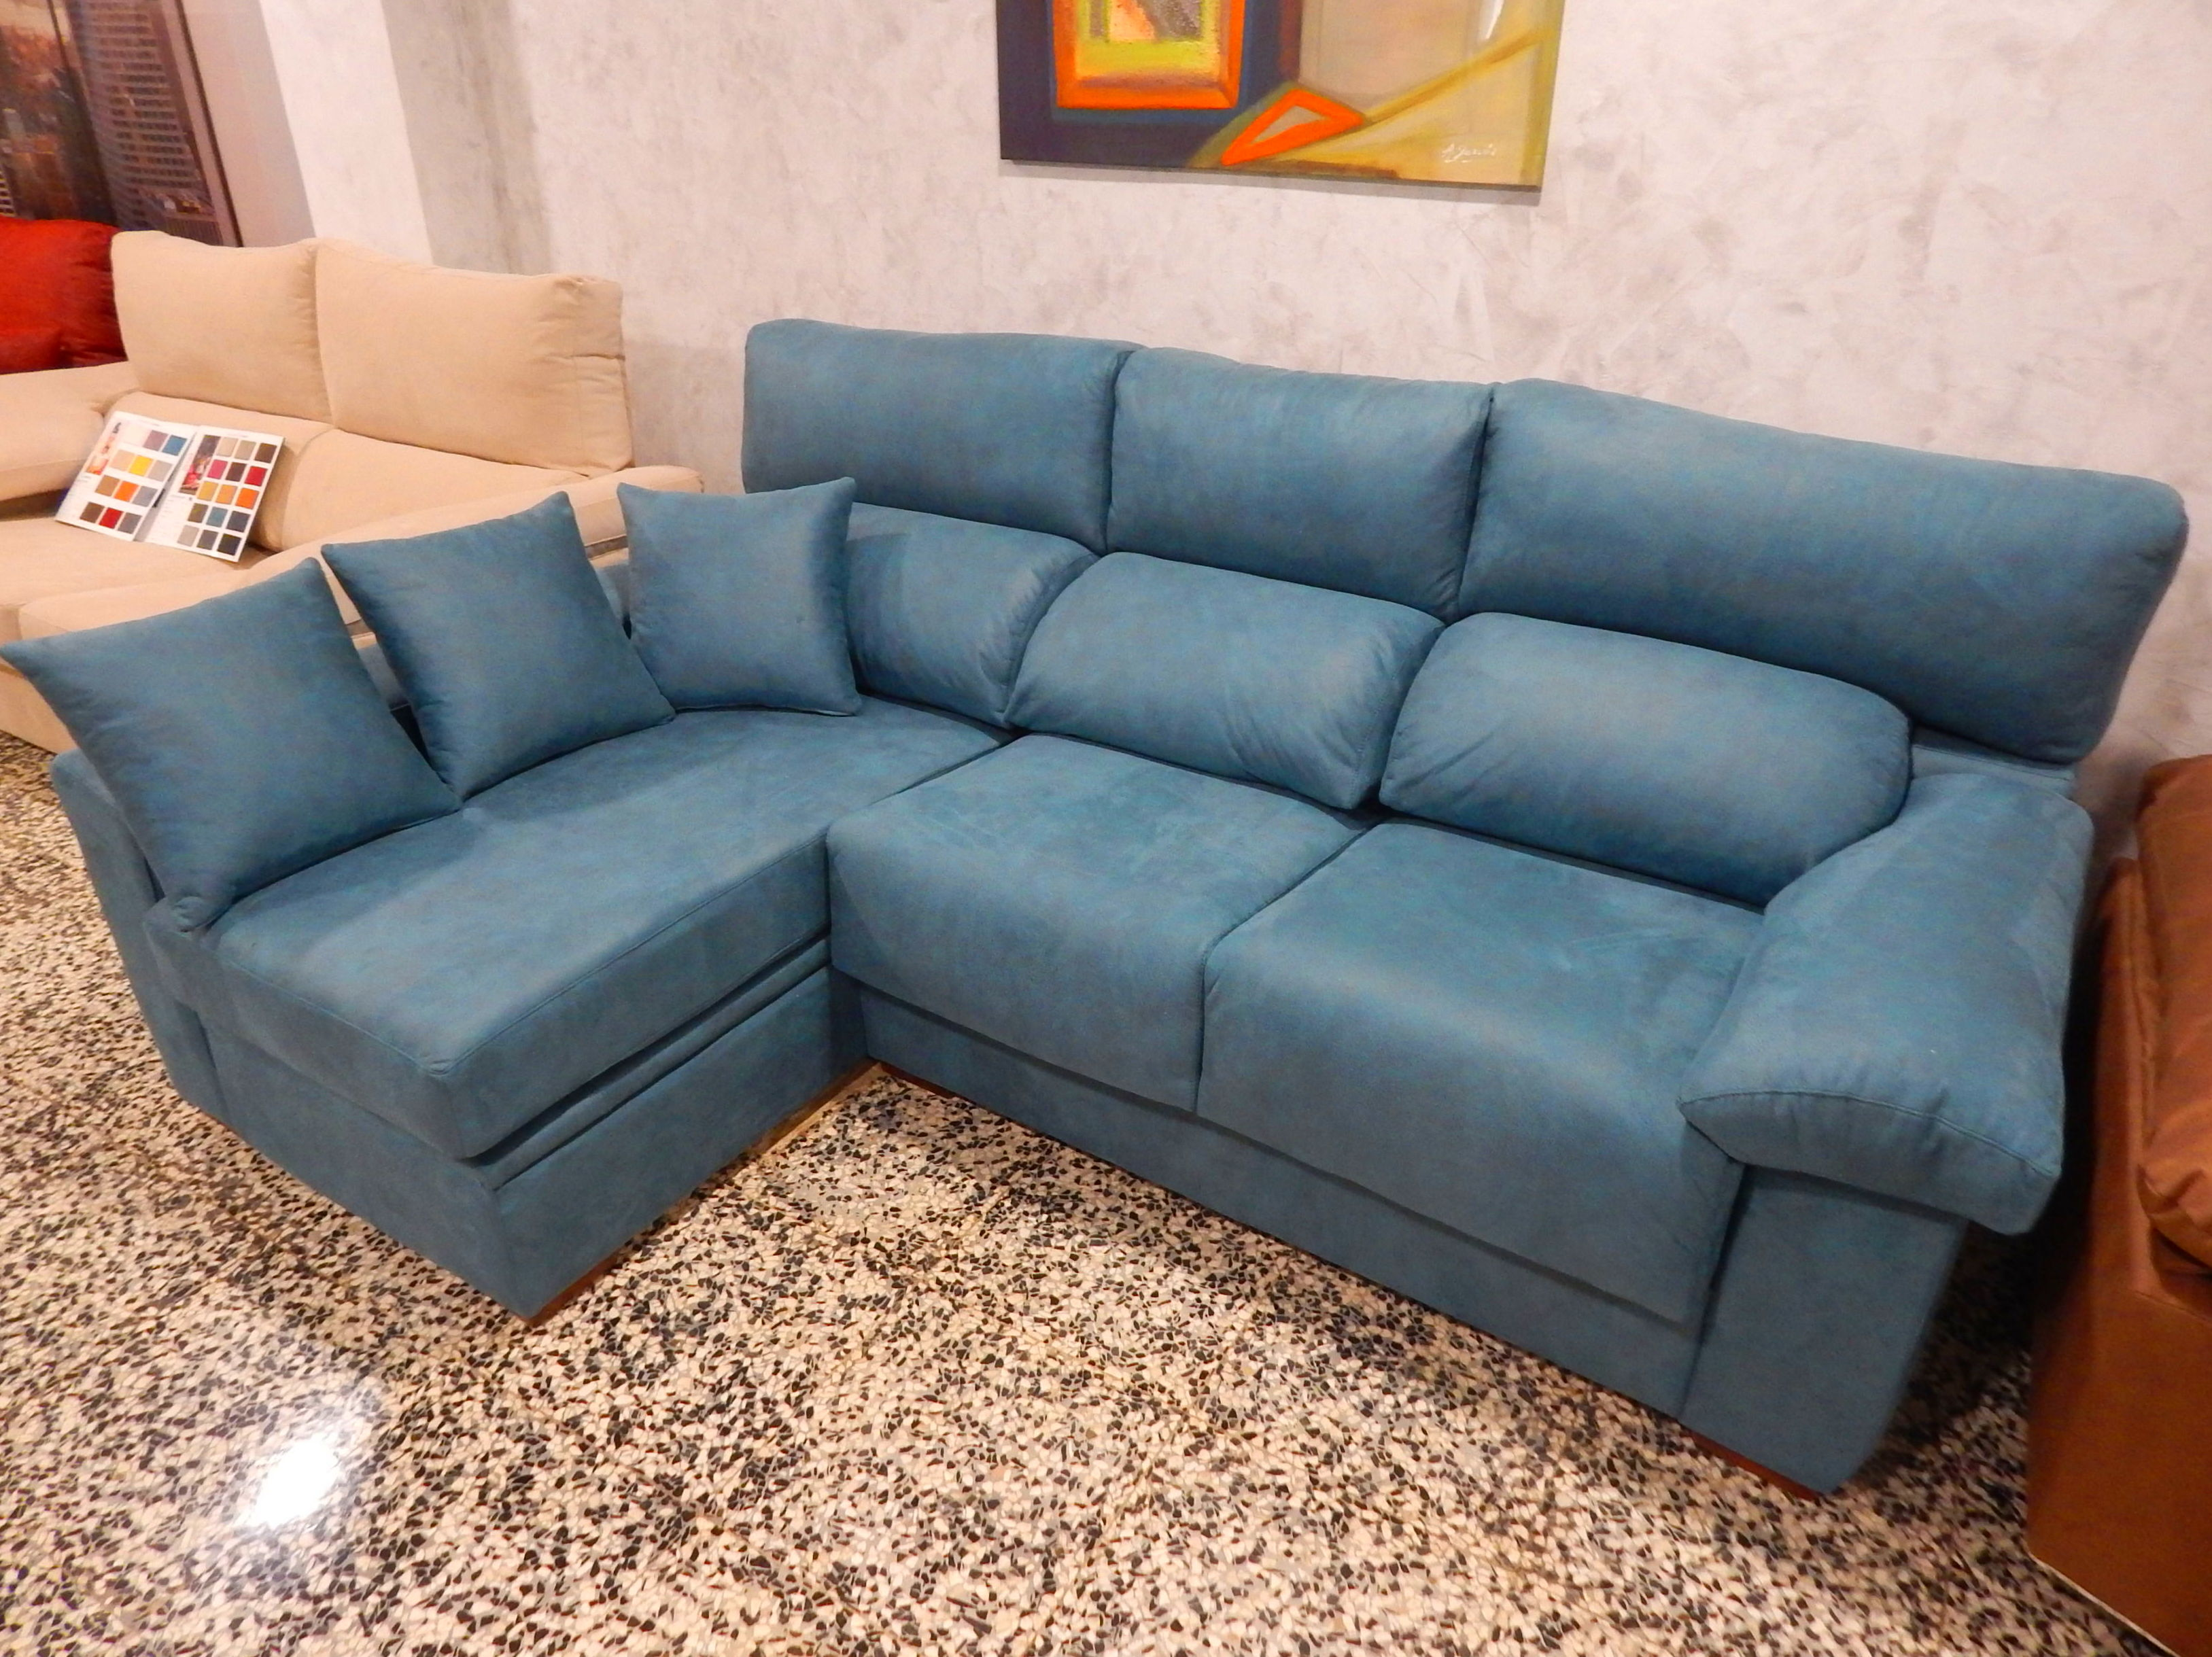 Muebles Talavera De La Reina Sofas Anticrisis Latest Puff Polipiel With Sofas